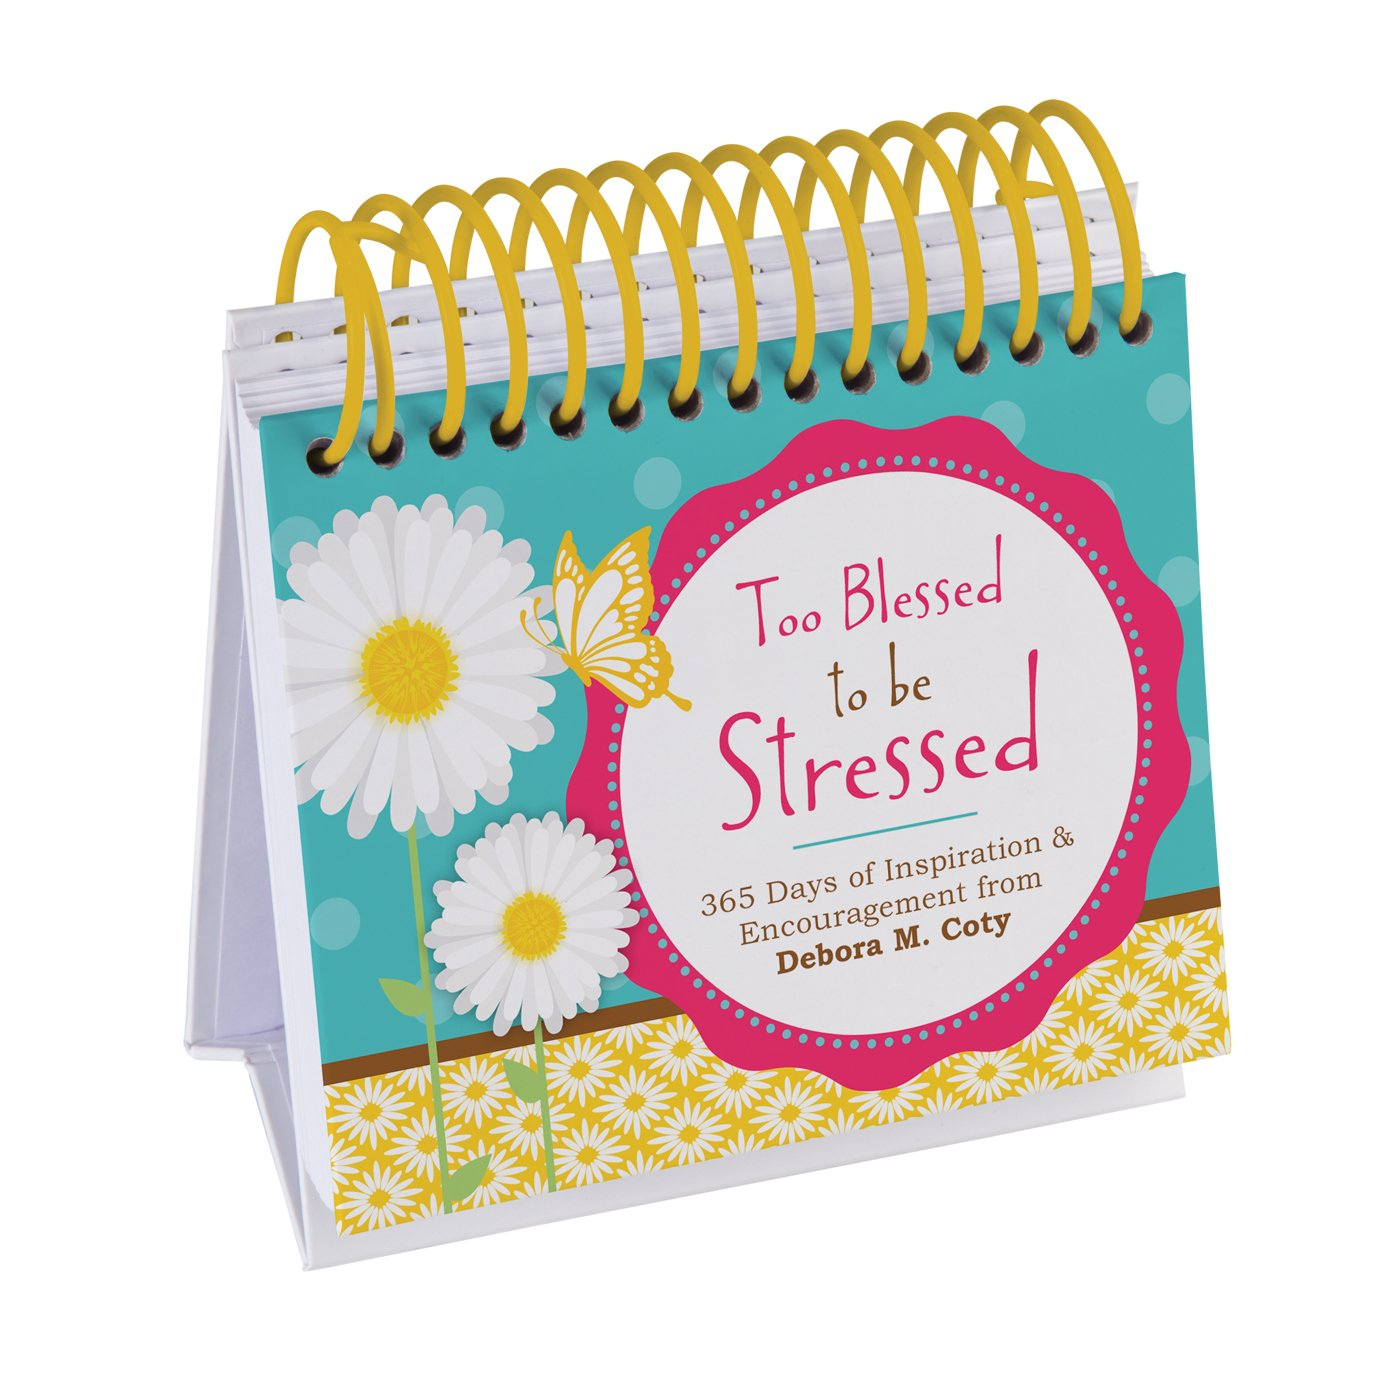 Too Blessed to Be Stressed Perpetual Calendar: 365 Days of Inspiration and Encouragement from Debora M. Coty ebook